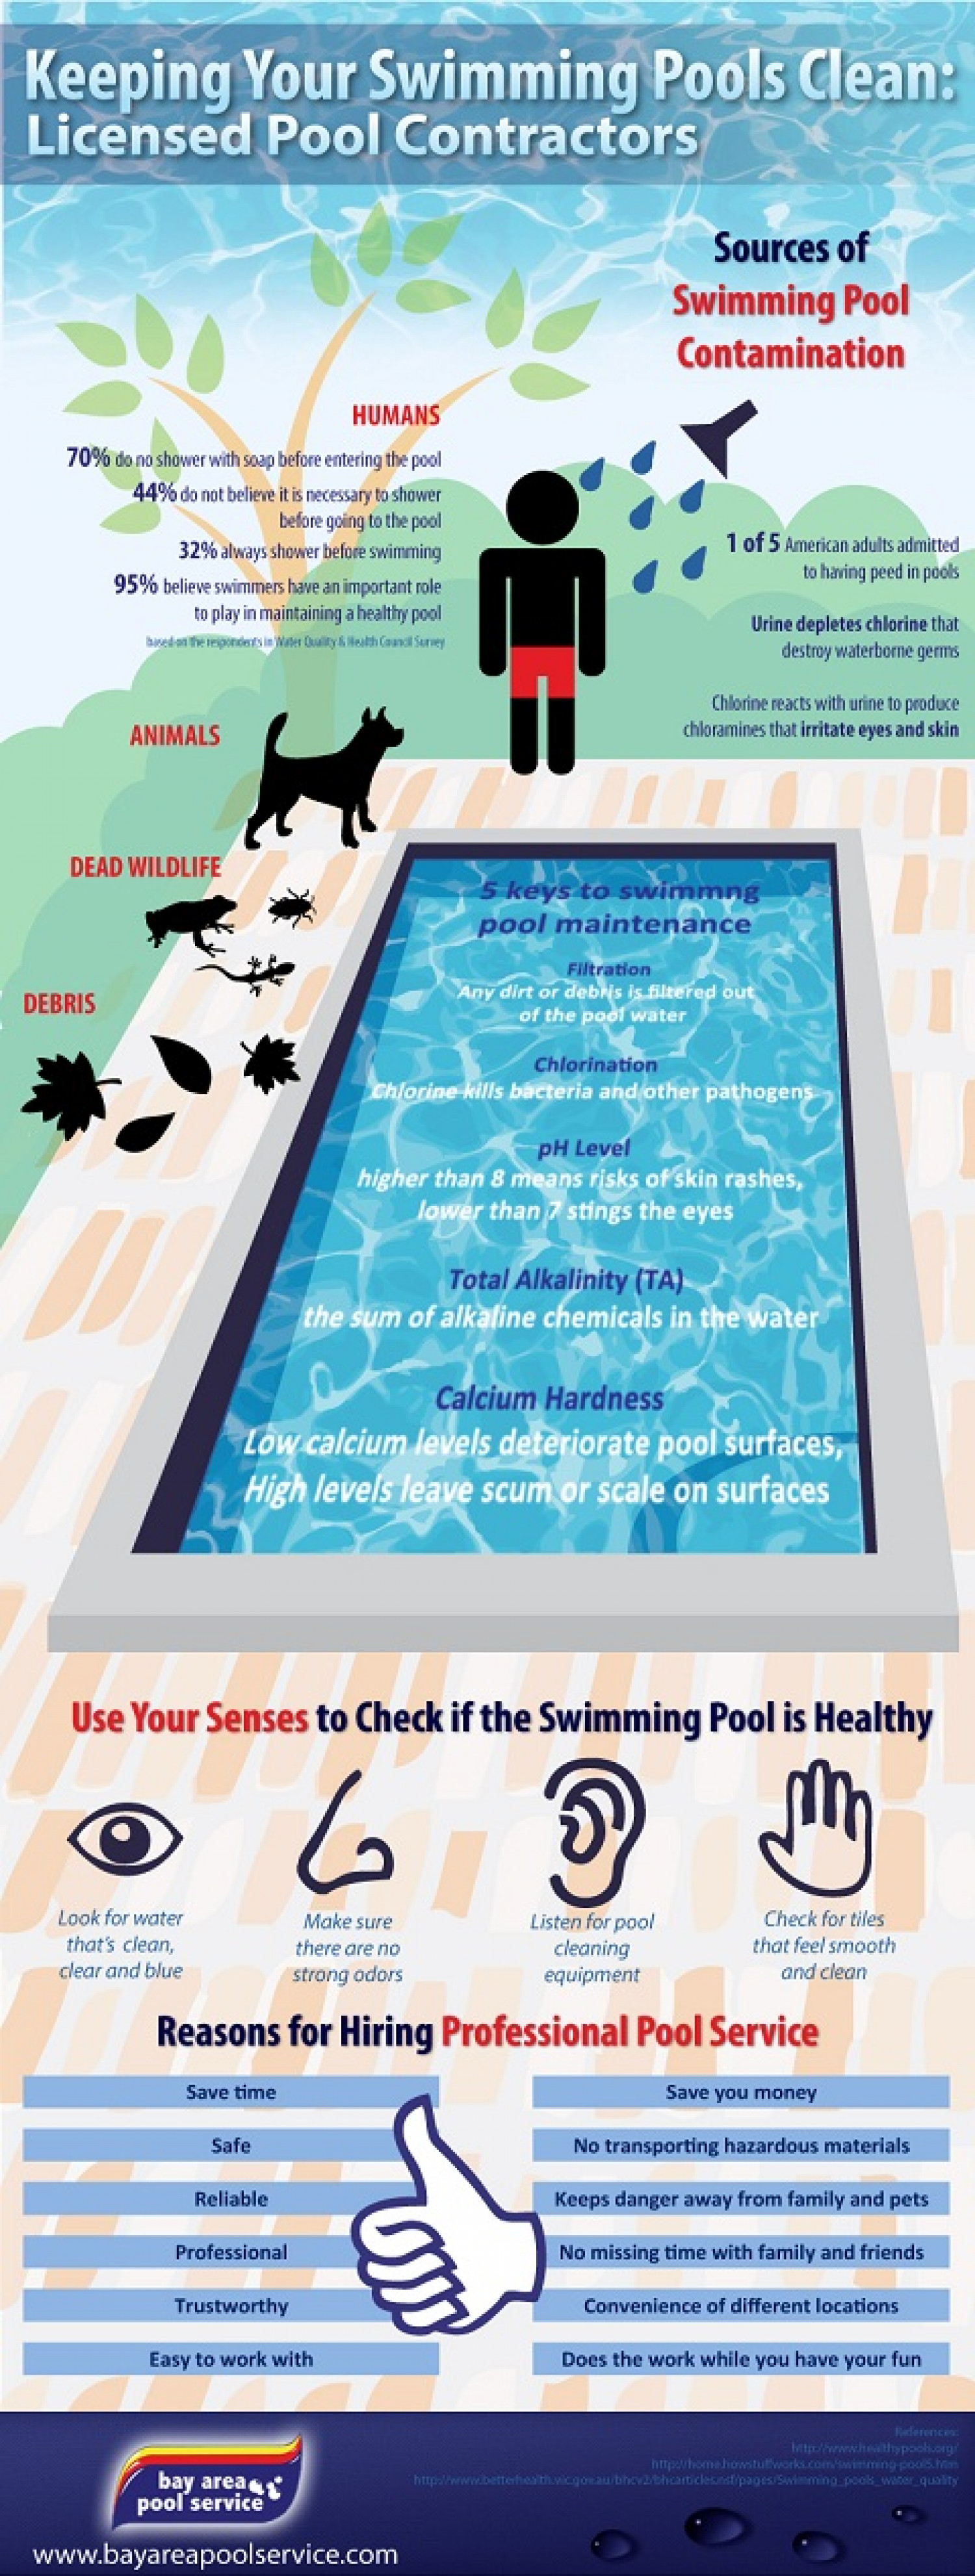 Keeping Your Swimming Pools Clean: Licensed Pool Contractors Infographic